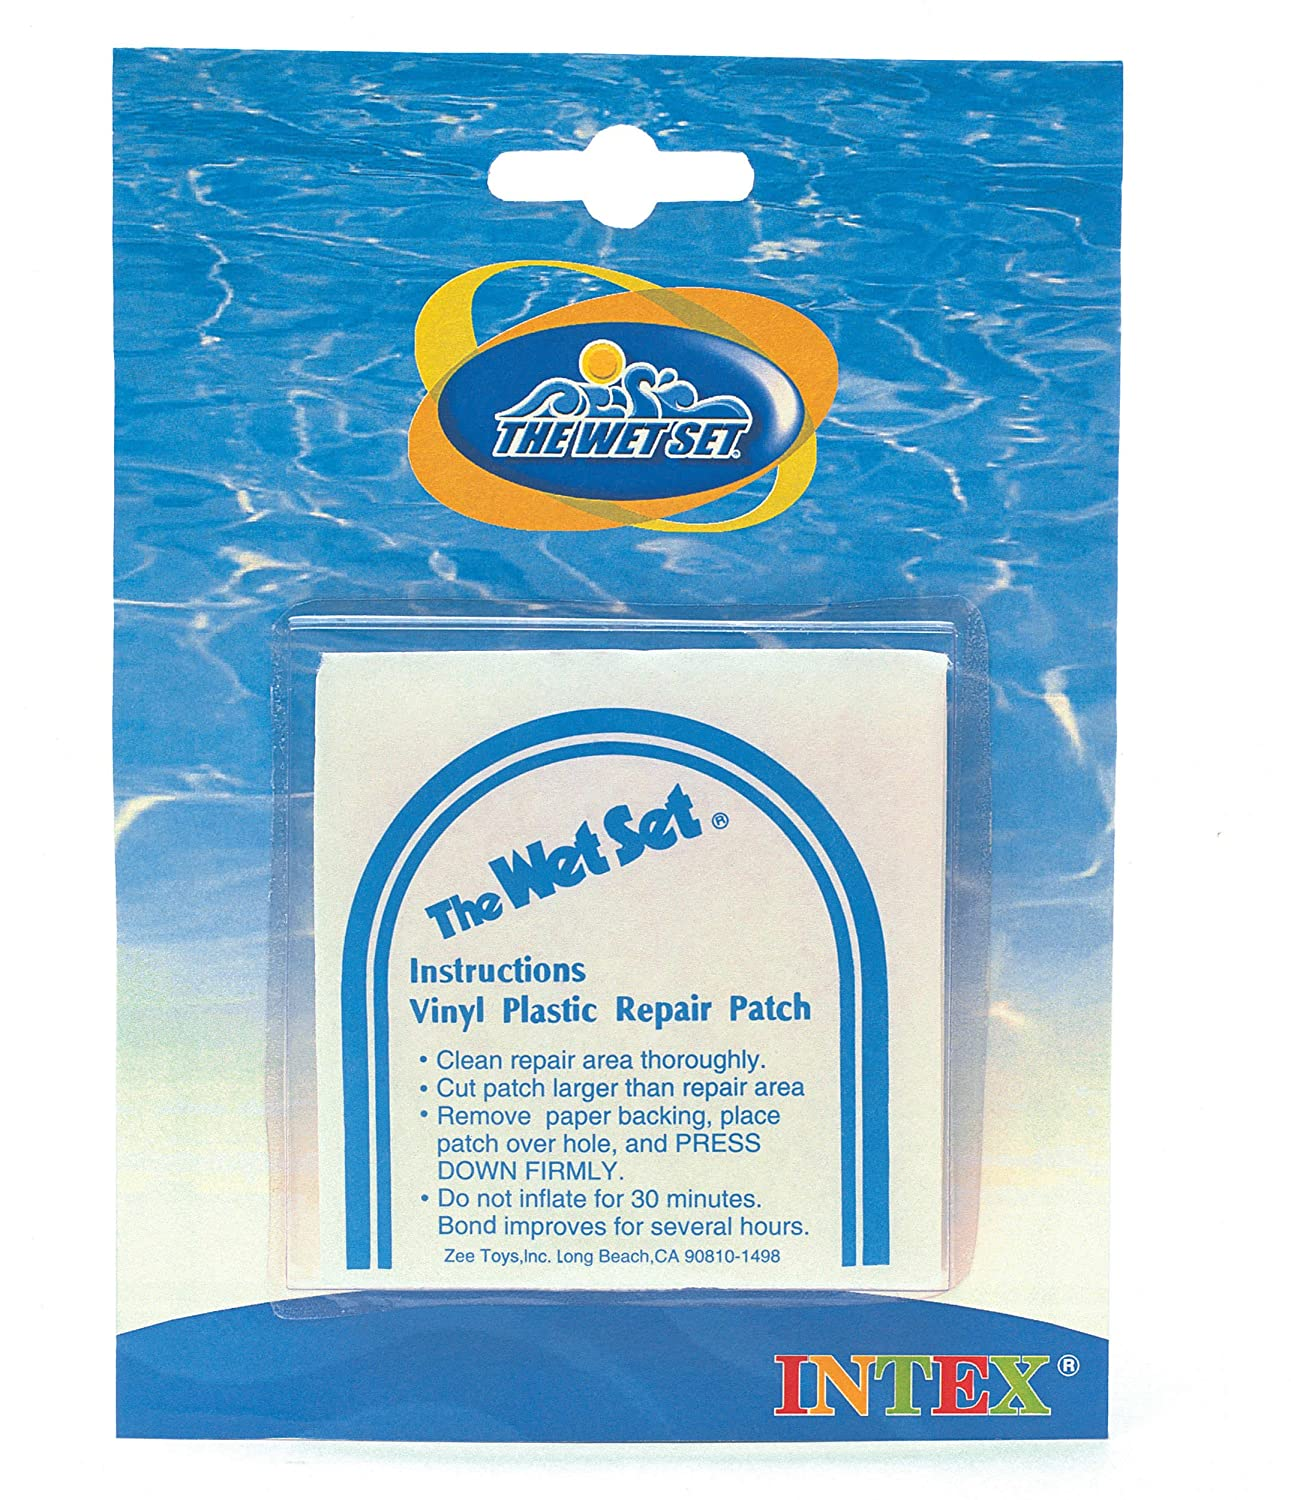 Amazon.com: Intex Wet Vinyl Plastic Repair Patch. 6 Count: Toys & Games